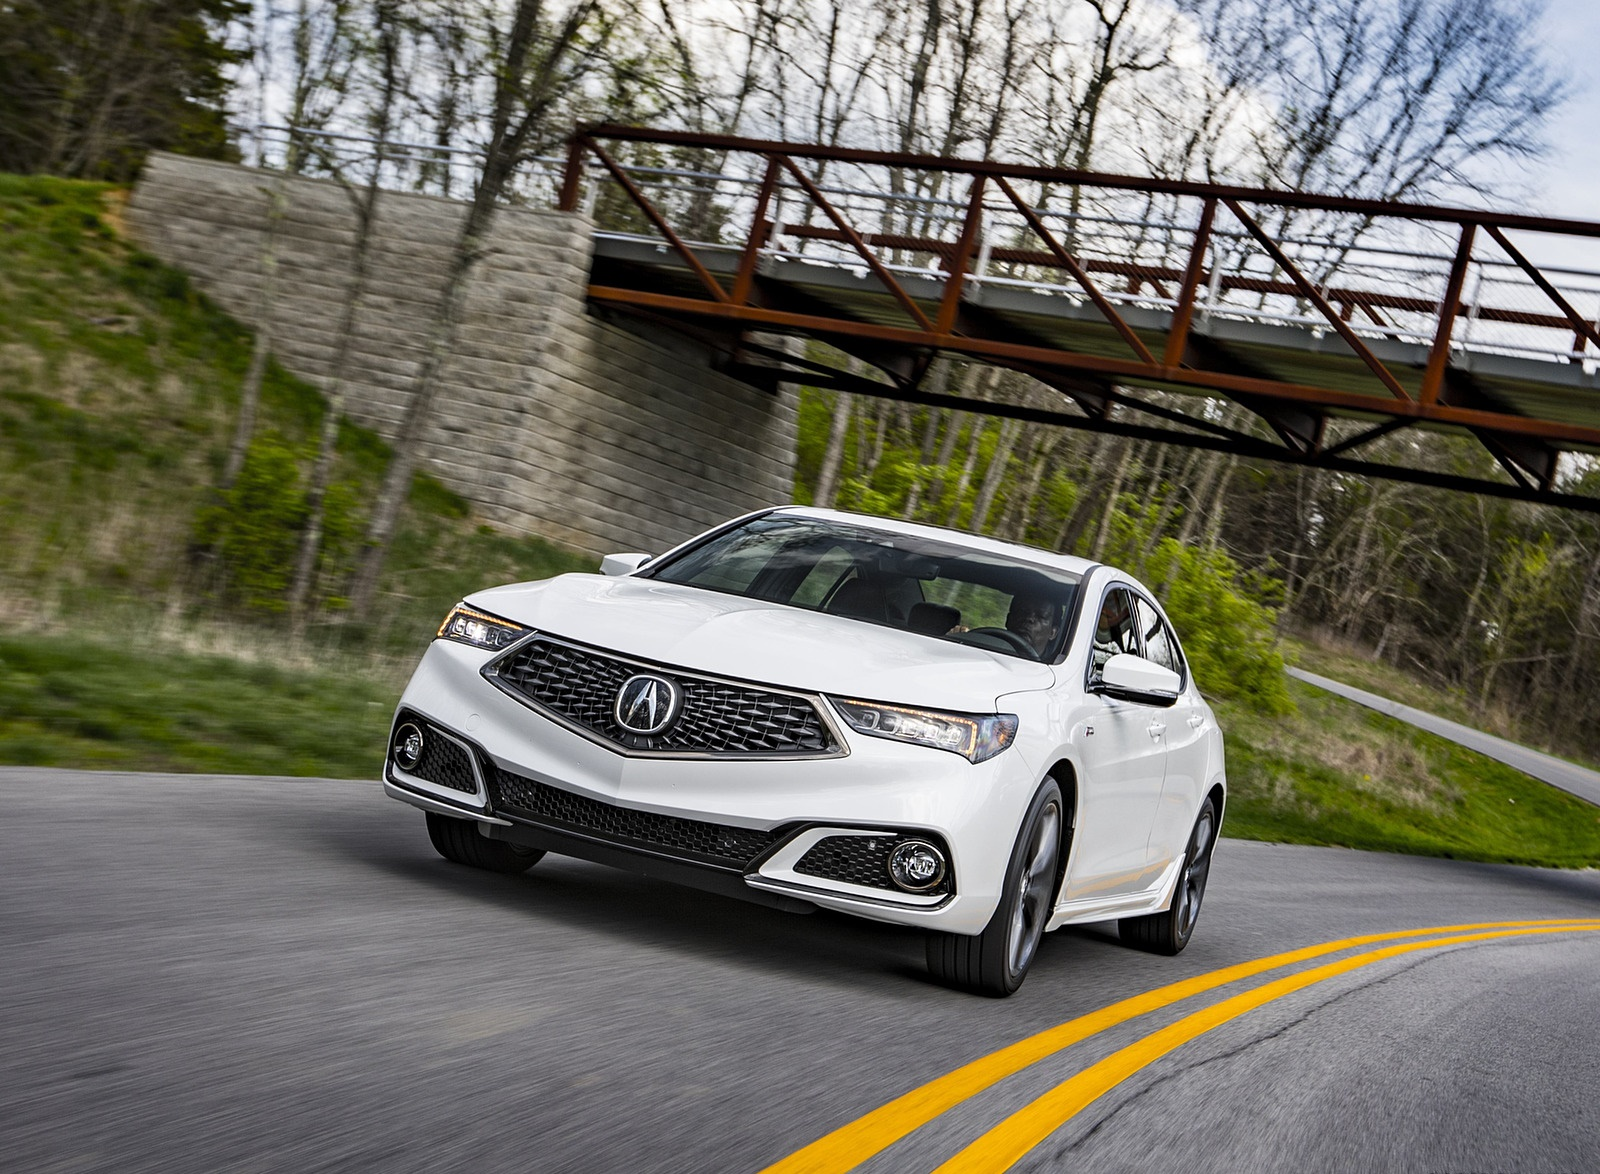 2019 Acura TLX A-Spec SH-AWD Front Wallpapers (6)